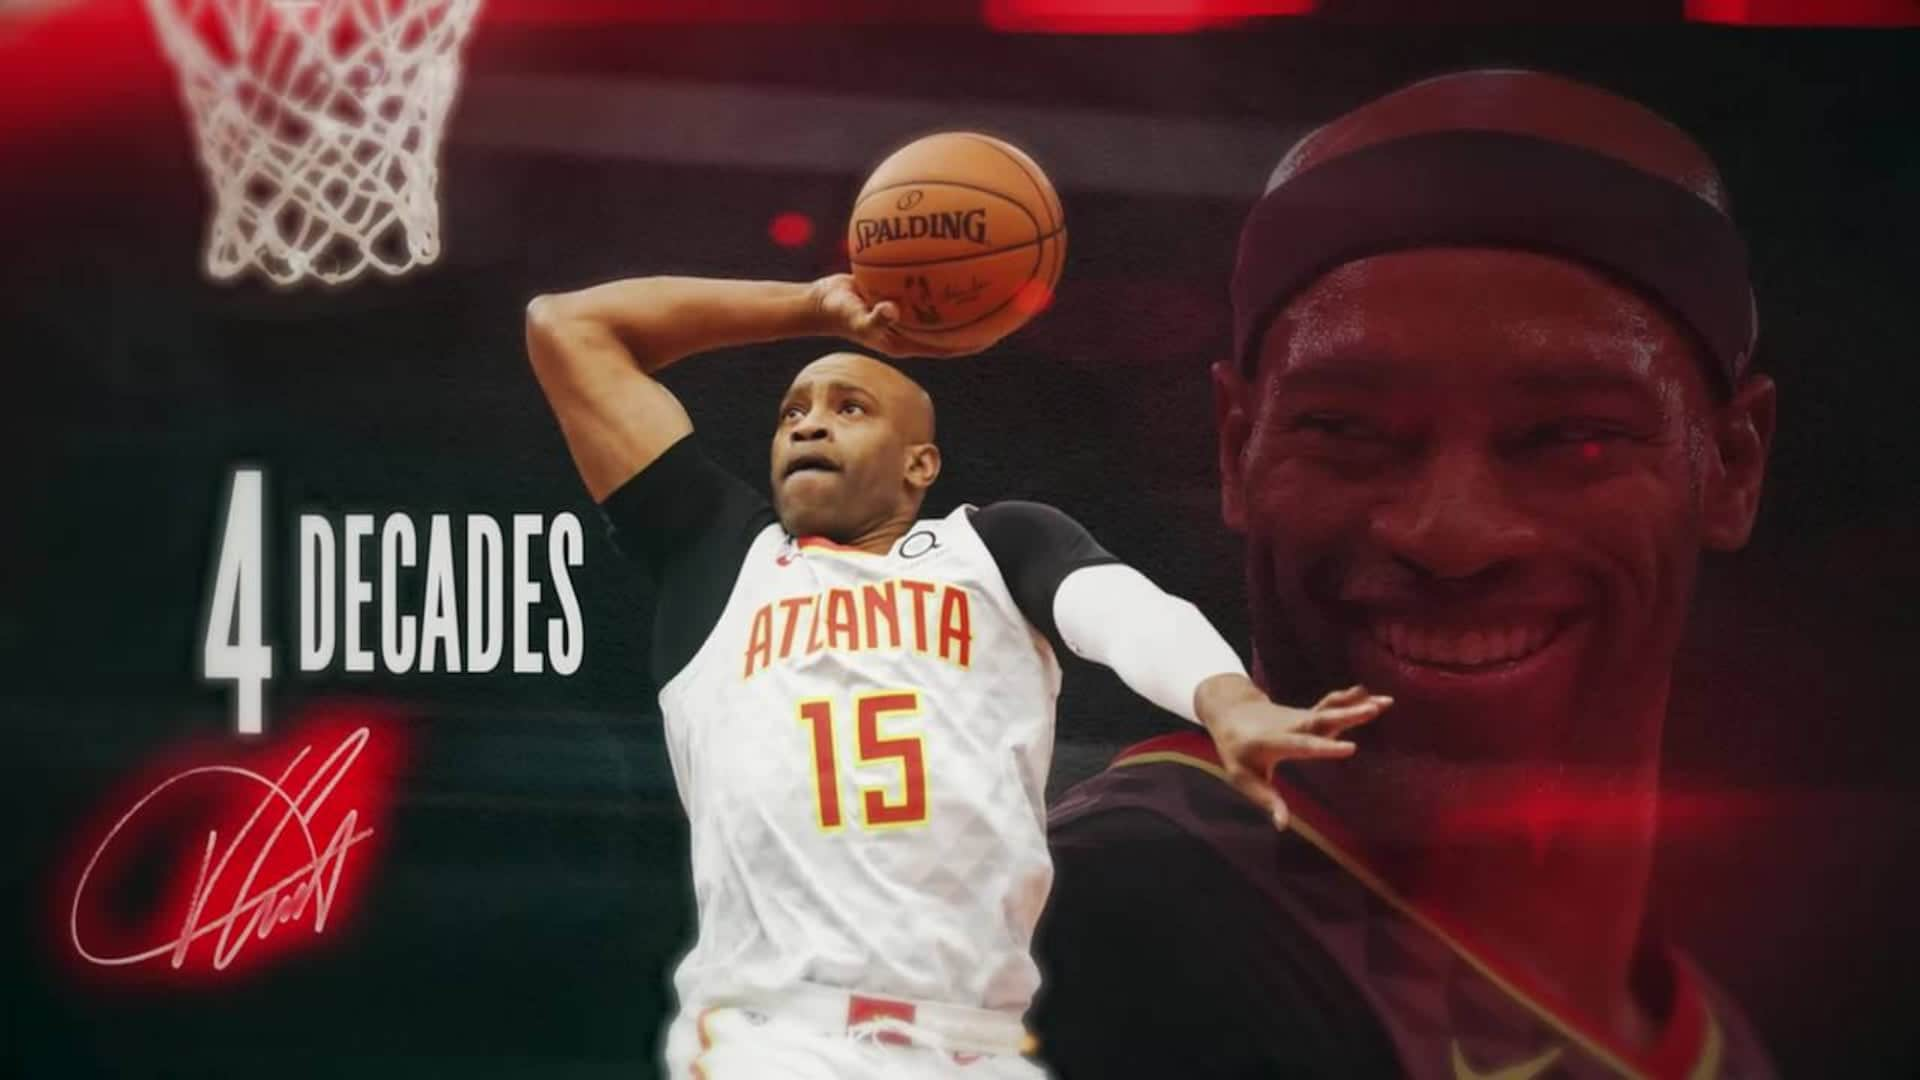 Vince Carter becomes first player in NBA history to appear in four different decades